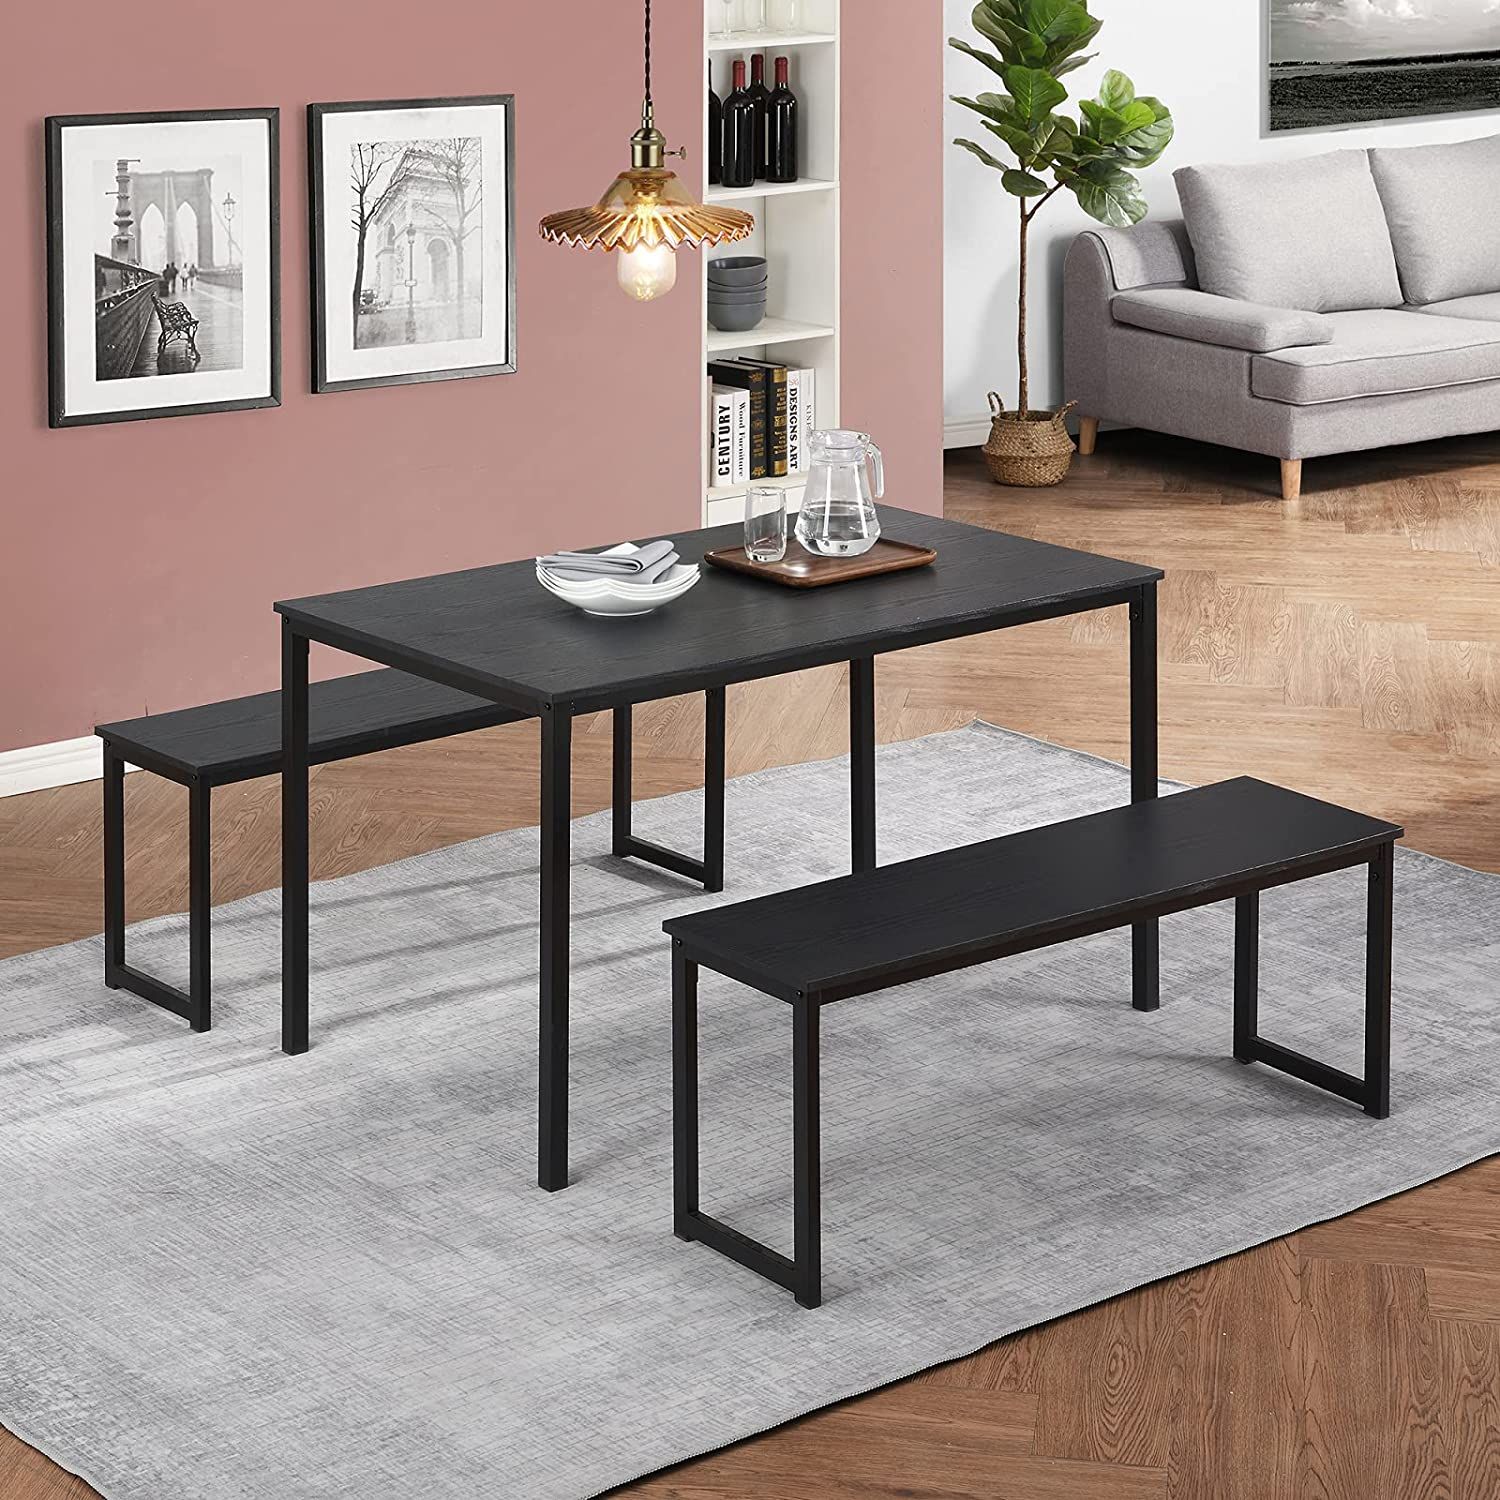 Betos 3 Piece Dining Max 53% OFF Outlet SALE Set Kitchen Table Benches with